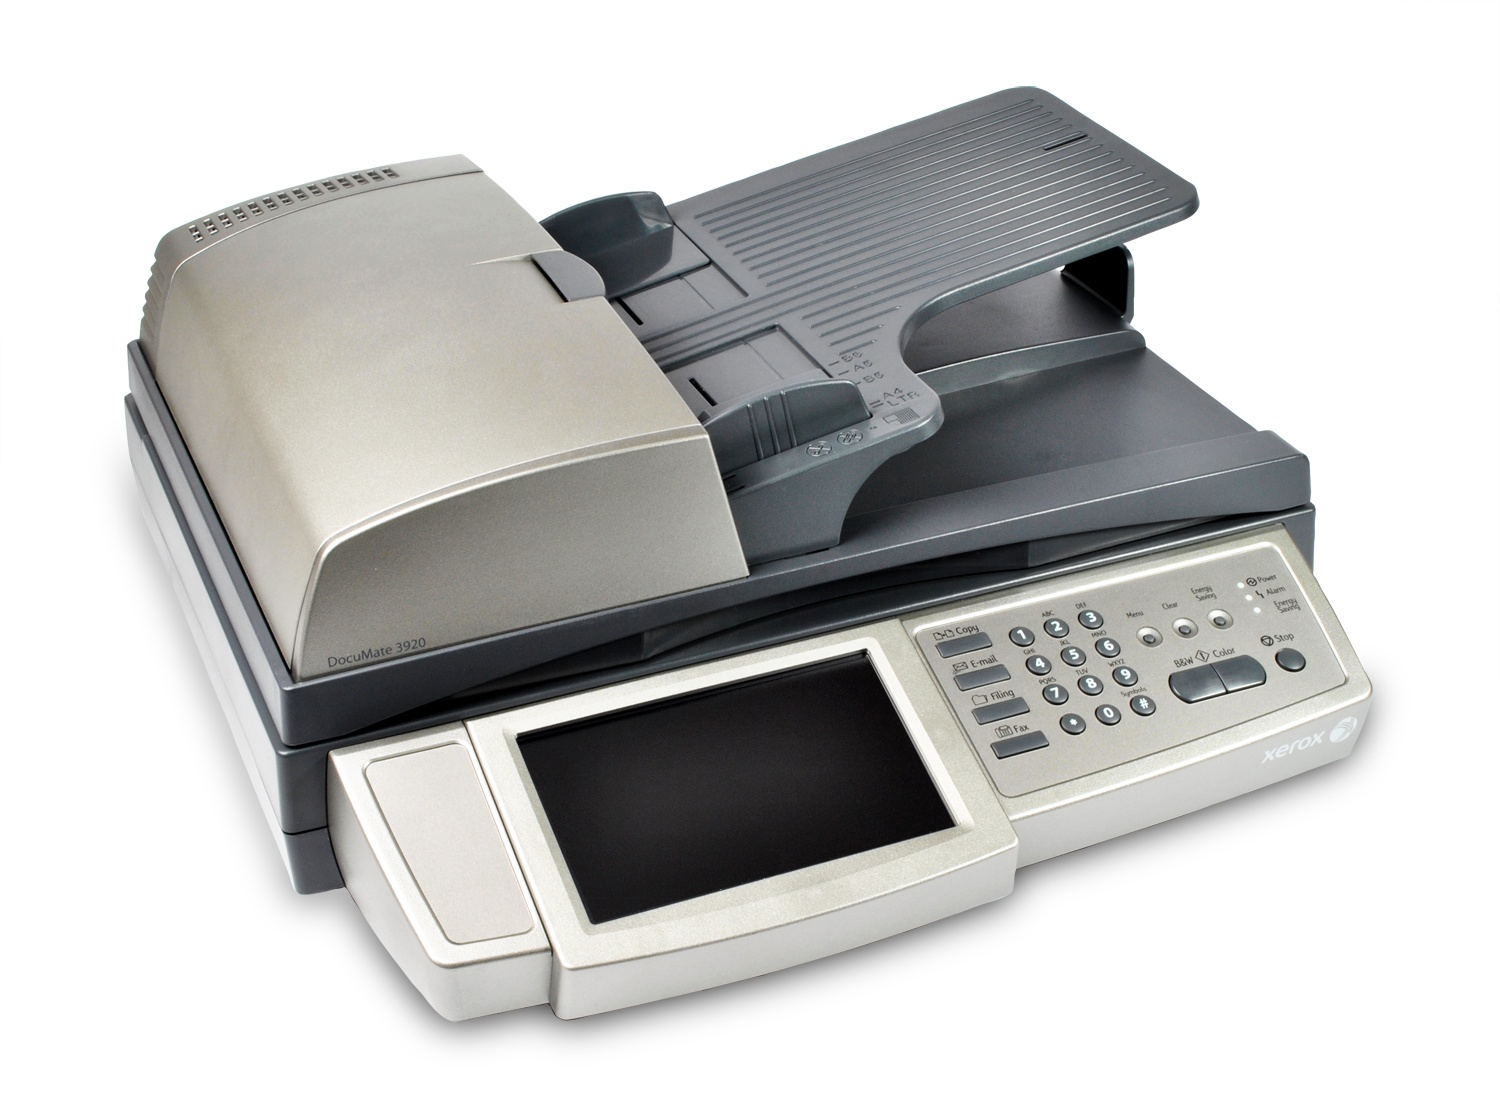 Xerox DocuMate 3920 20ppm Color Duplex 8.5x14